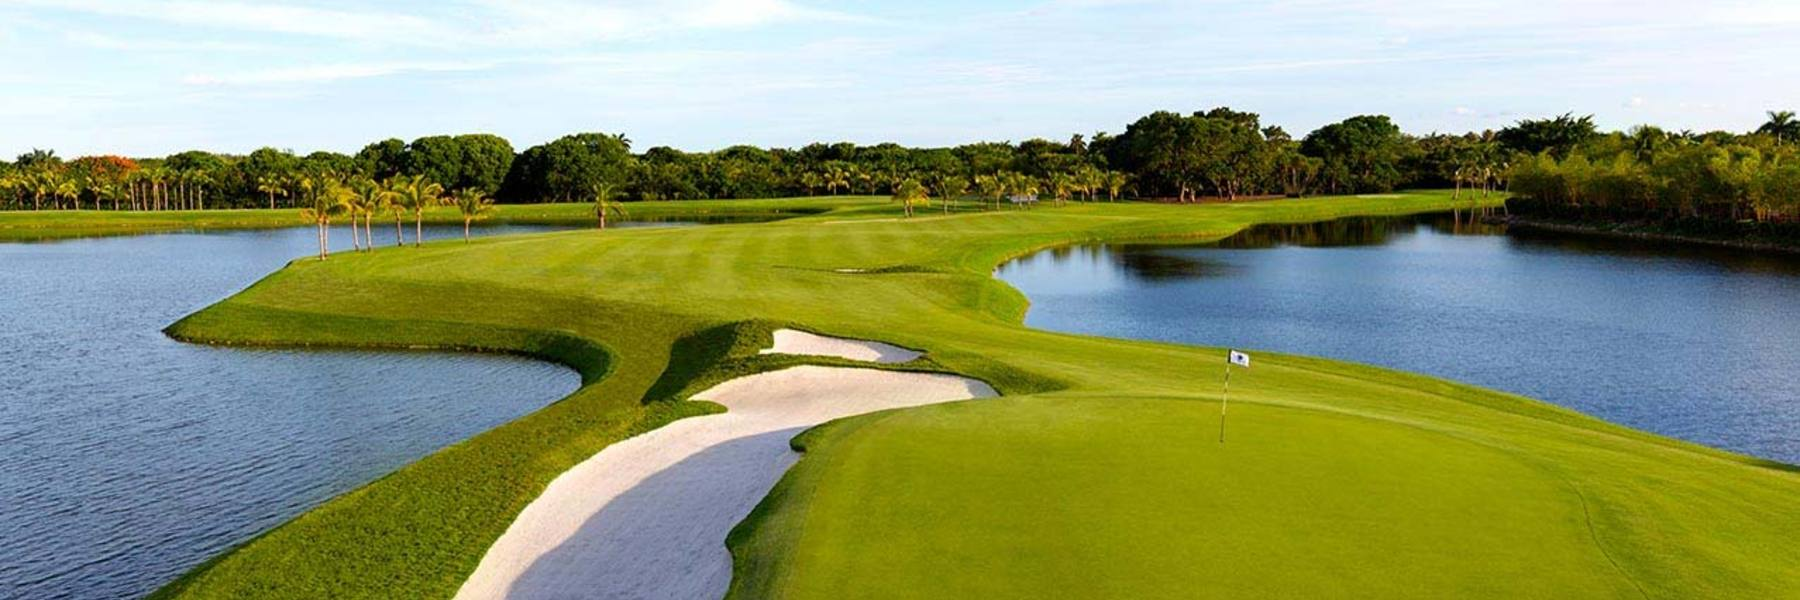 Golf Vacation Package - Doral Golden Palm Course